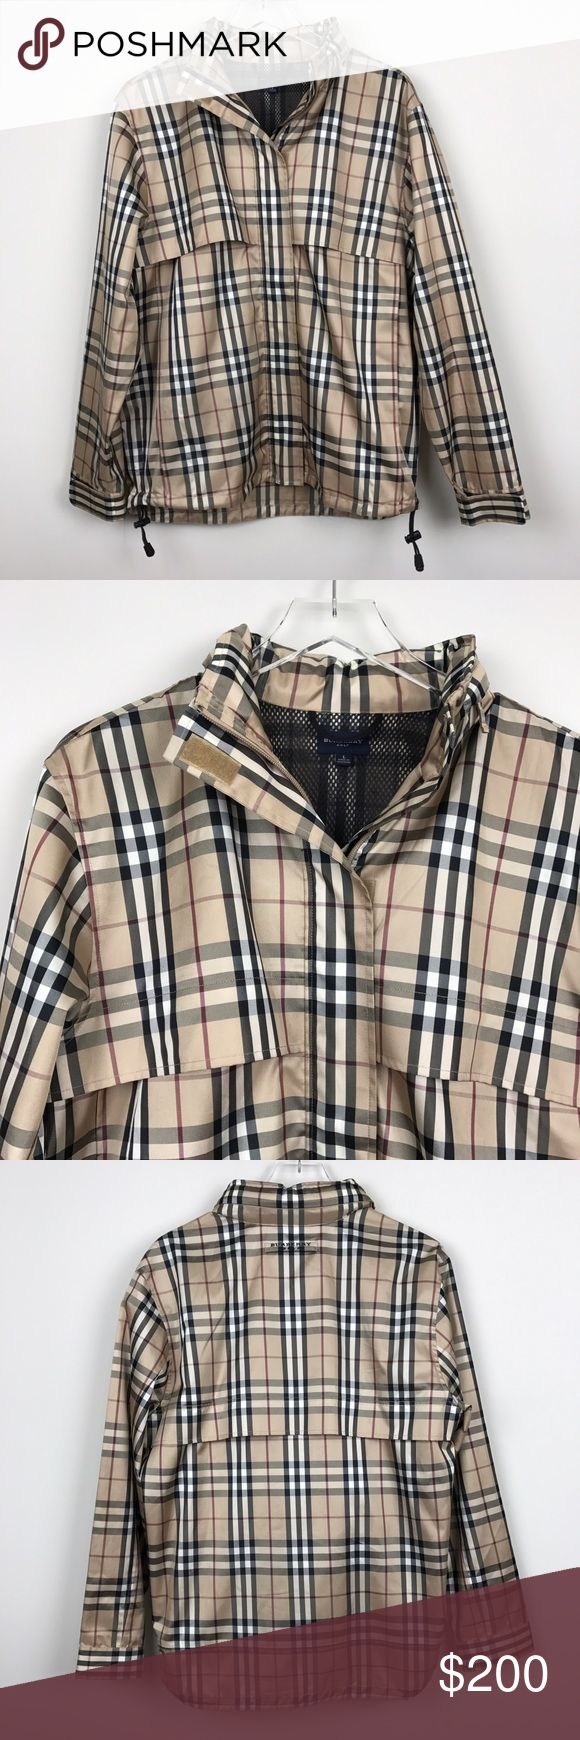 """[Burberry] Golf Nova Check Plaid Rain Jacket Hood Women's Burberry Golf jacket. Lightweight water resistant. Zip front. Adjustable tab cuff closures. Adjustable drawstring toggle hem. Vented. Hidden hood in collar. Logo embroidery at back of neck. Classic Nova Check Plaid.  🔹Pit to Pit: 22"""" 🔹Length: 28"""" 🔹Sleeve Length: 25"""" 🔹Shoulders: 18"""" 🔹Condition: Excellent pre-owned condition. No flaws.  *AI5 Burberry Jackets & Coats"""